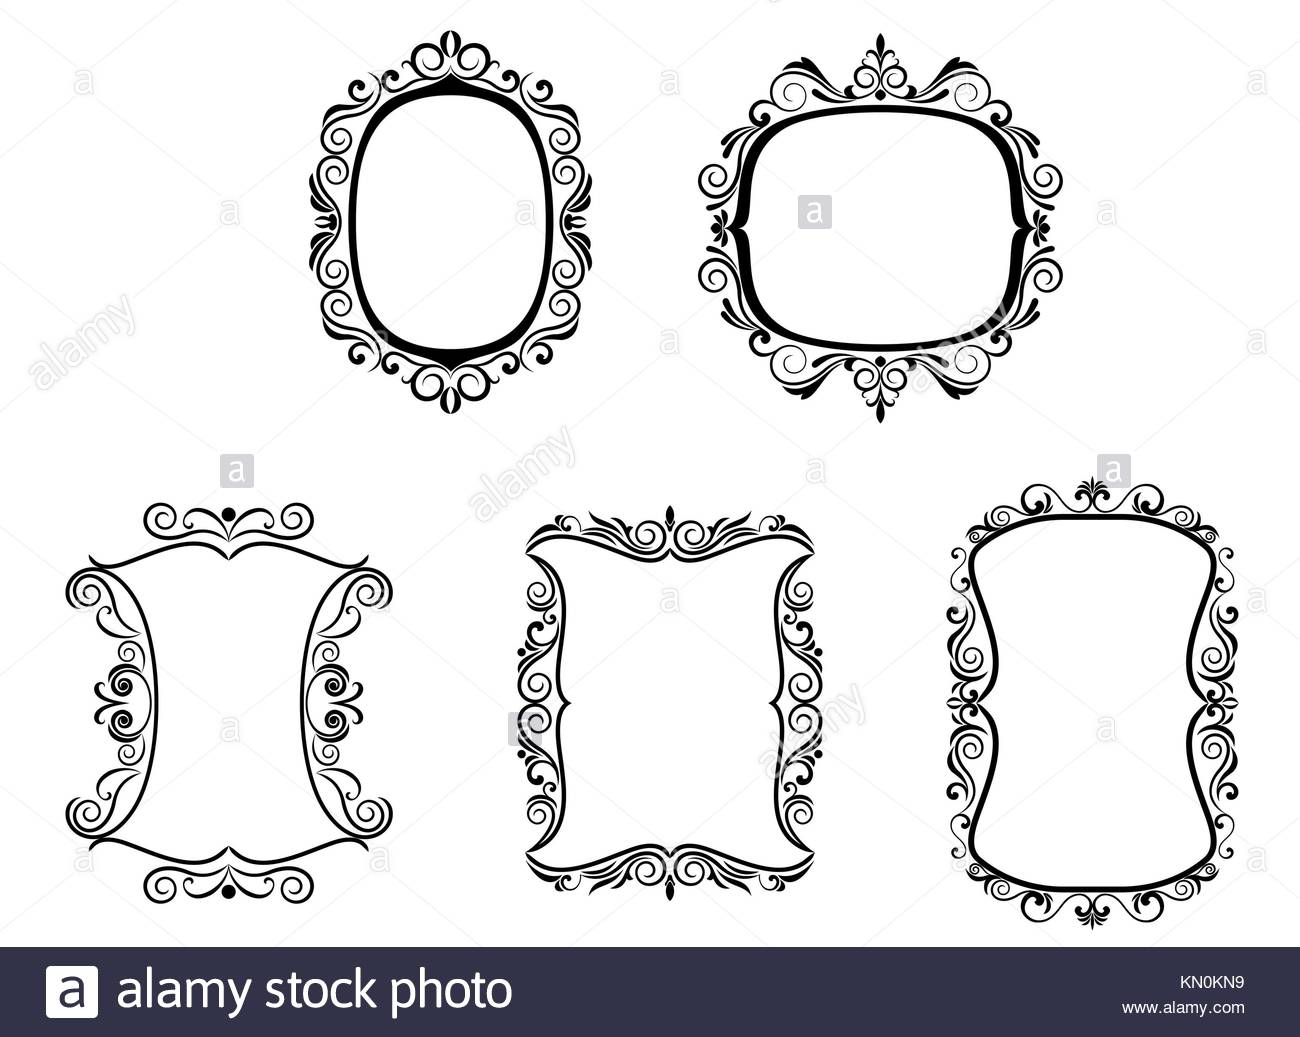 Victorian Gothic Wallpaper Cut Out Stock Images & Pictures - Alamy